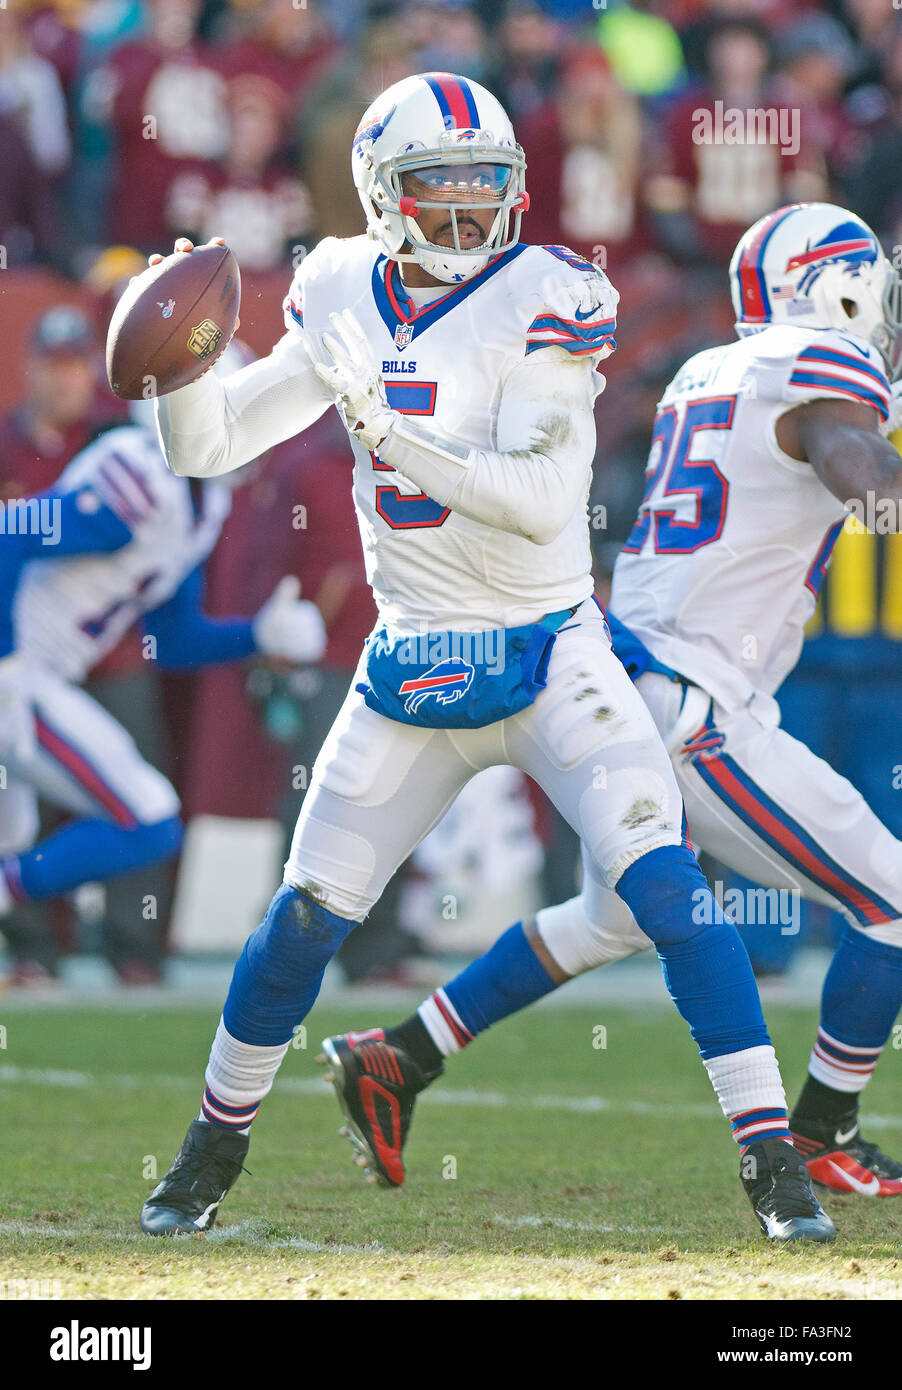 e9b300922 Buffalo Bills quarterback Tyrod Taylor (5) looks for a receiver in first  quarter action against the Washington Redskins at FedEx Field in Landover